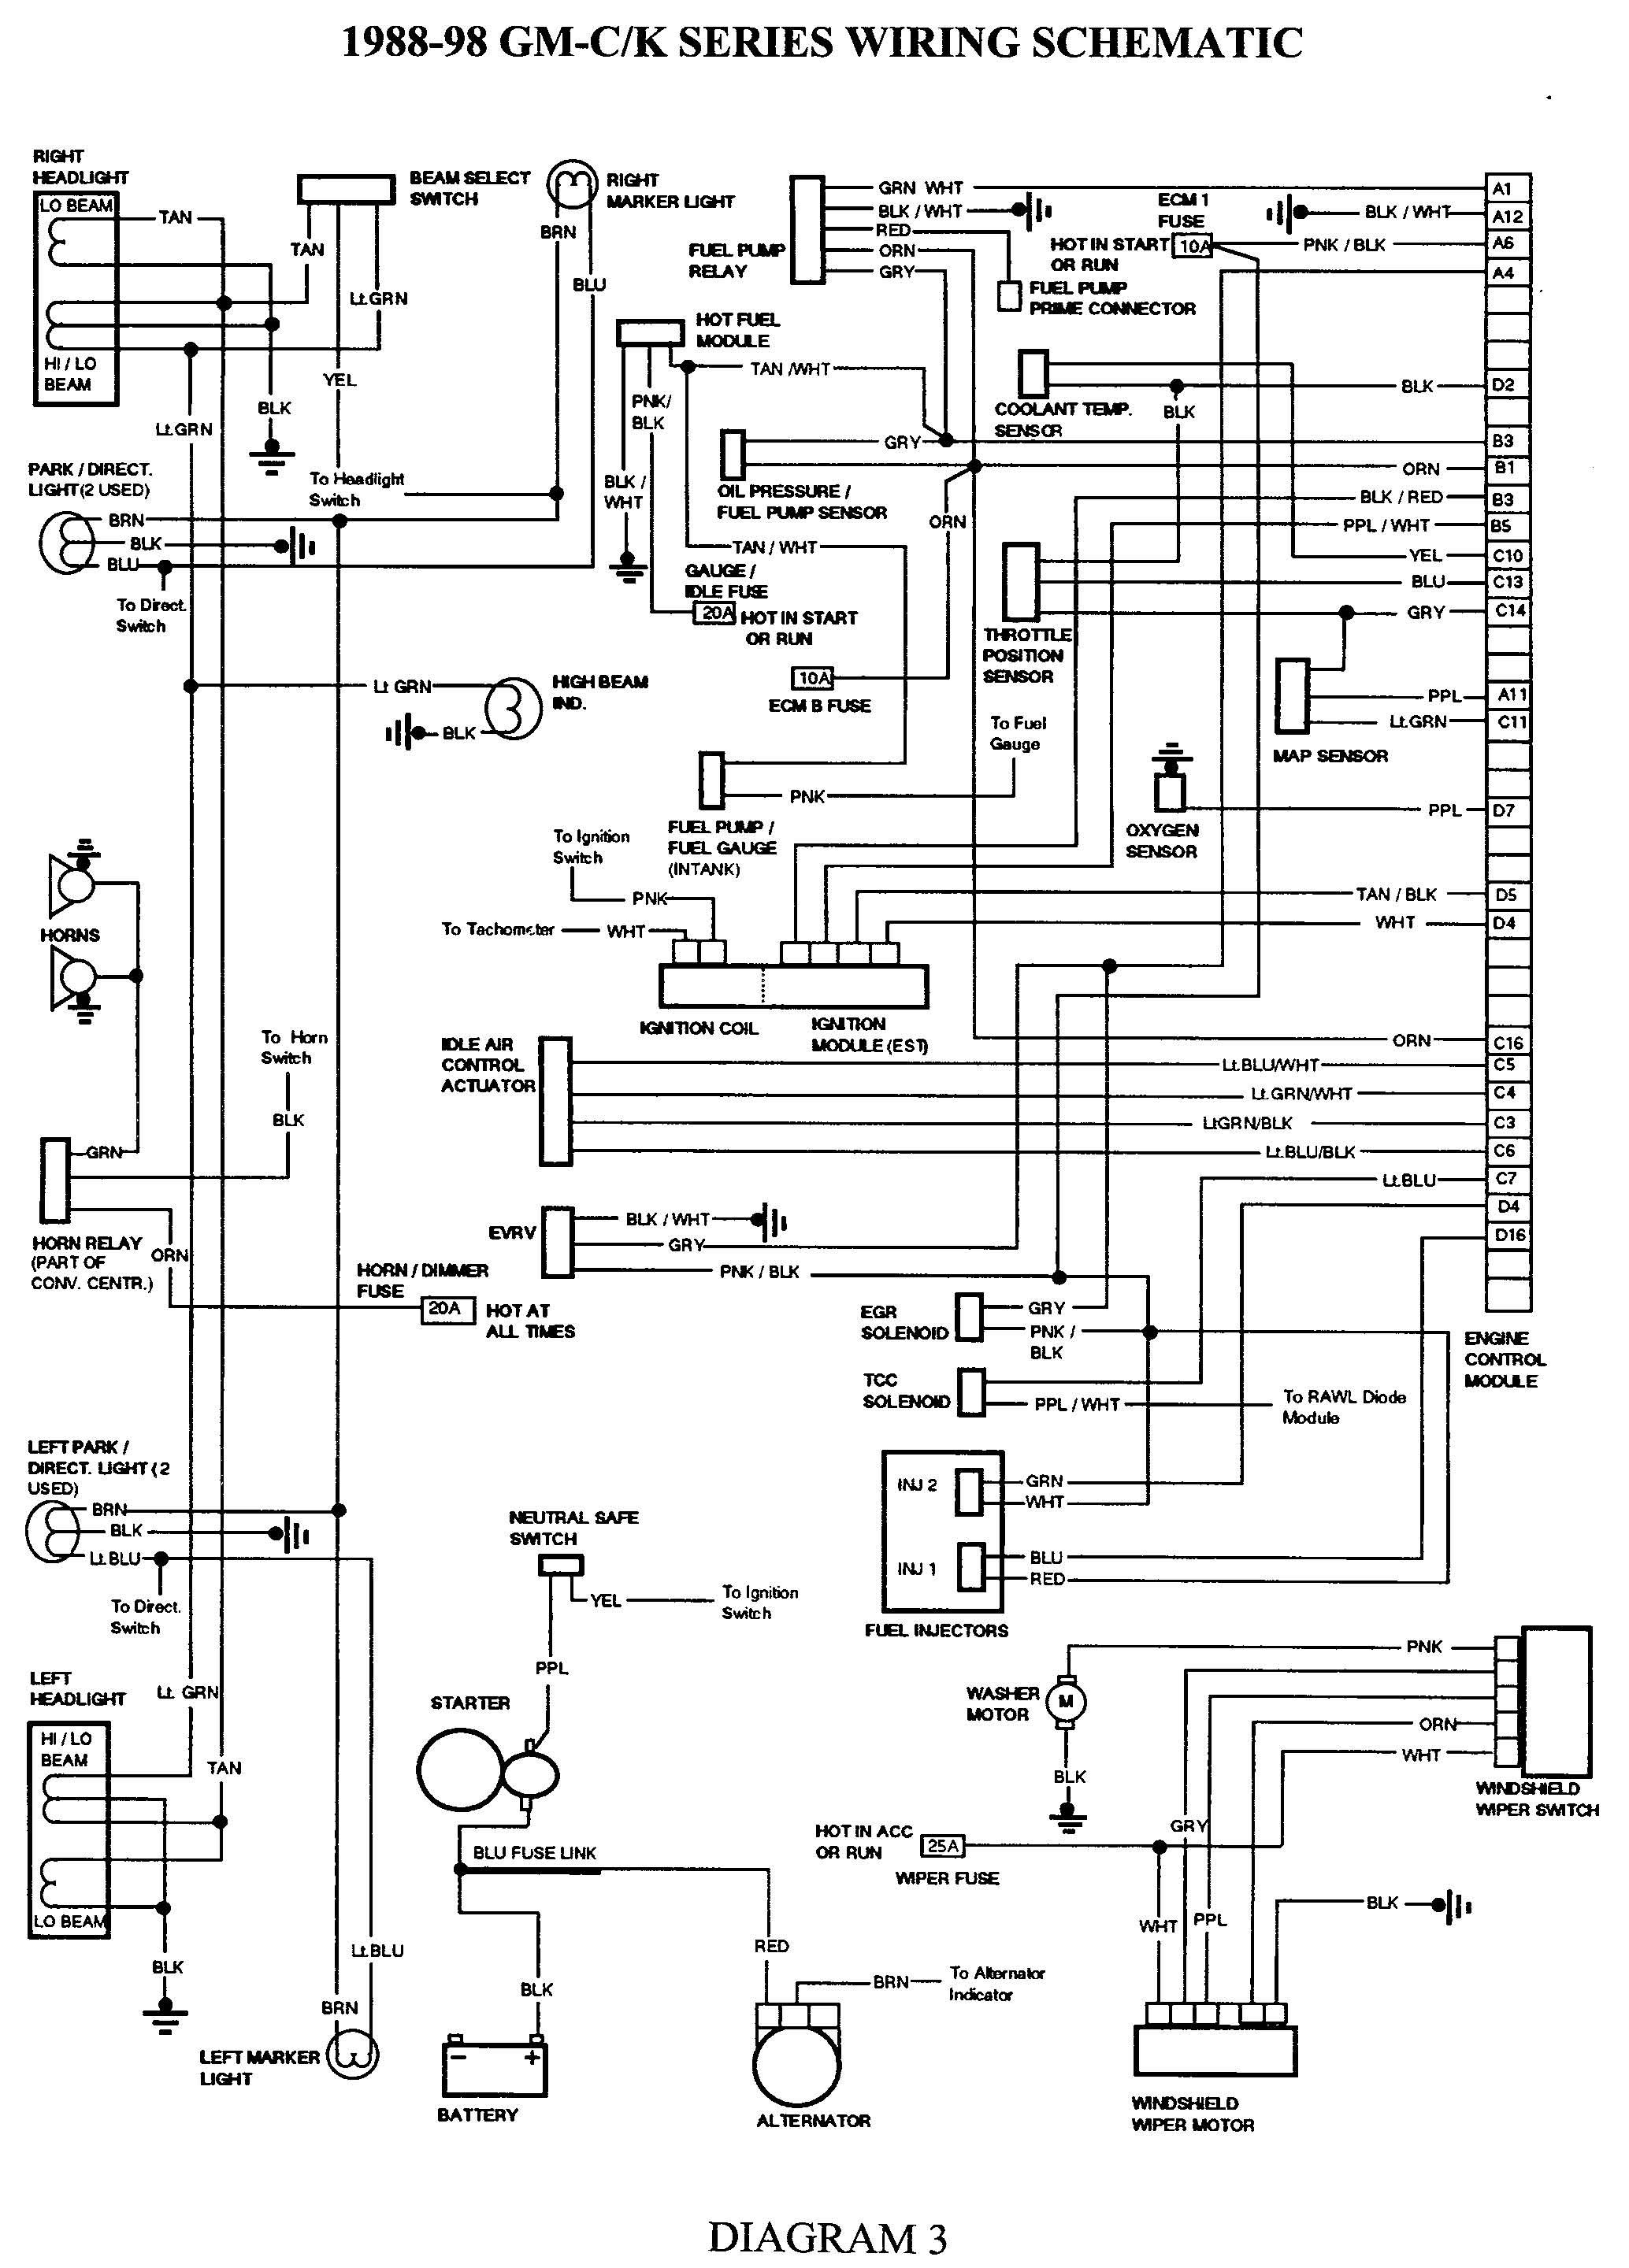 gmc truck wiring diagrams on gm wiring harness diagram 88 98 kc mix gmc truck wiring [ 2068 x 2880 Pixel ]